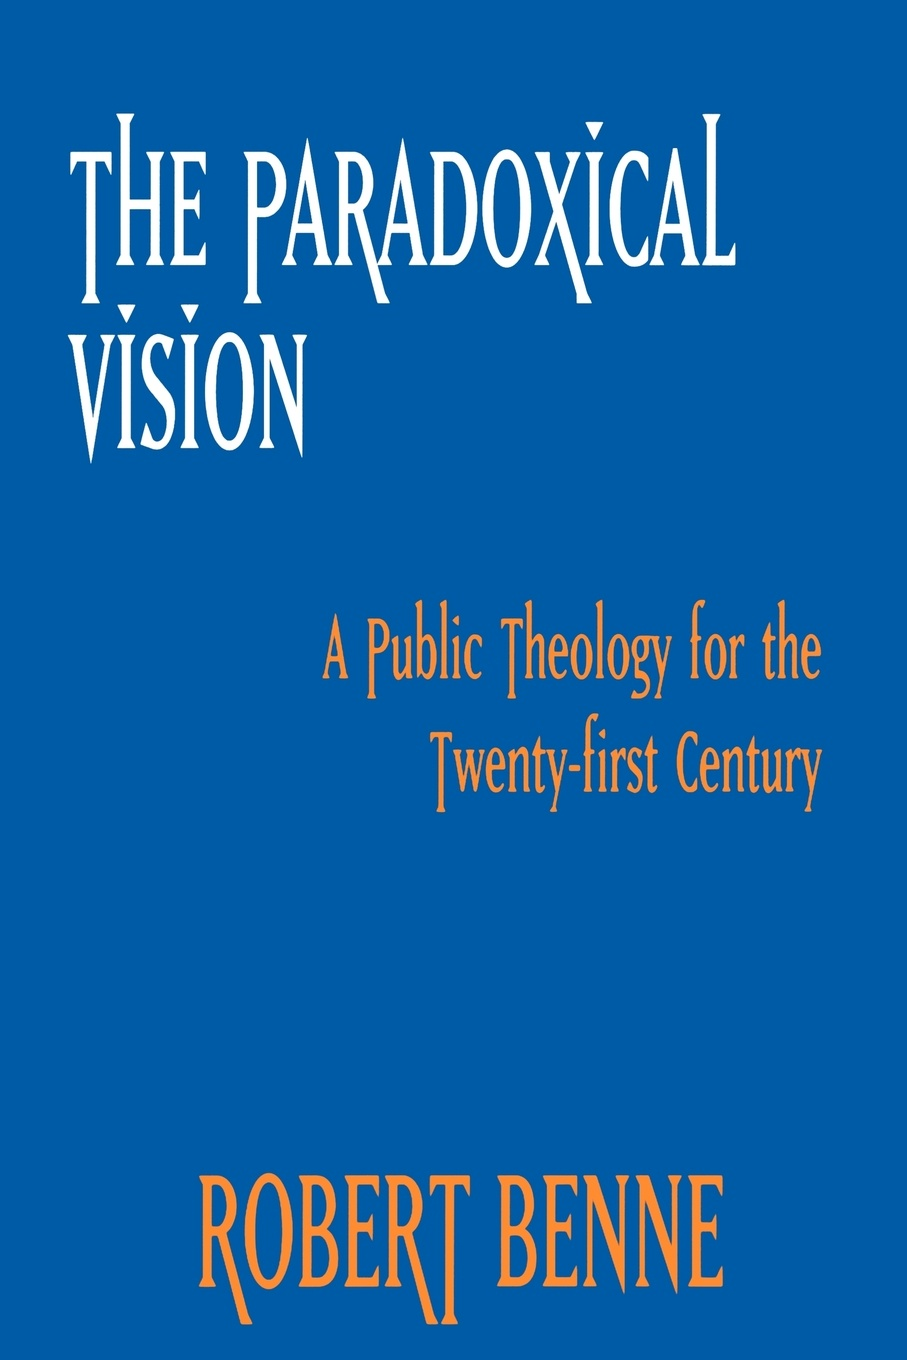 Robert Benne Paradoxical Vision thomas h groome christian religious education sharing our story and vision